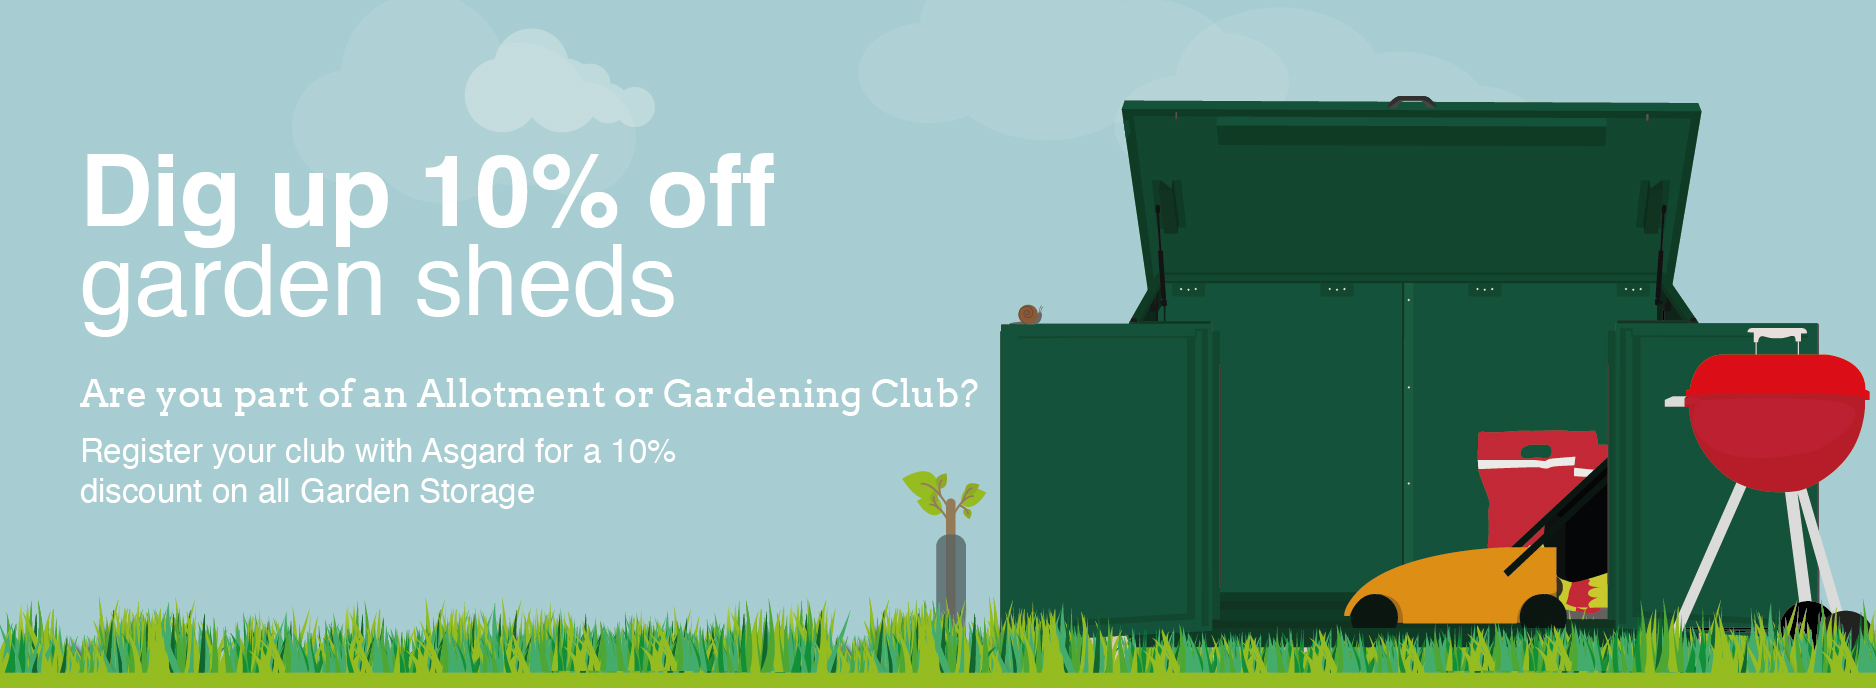 Asgard Club Discount Code for Garden Storage Sheds